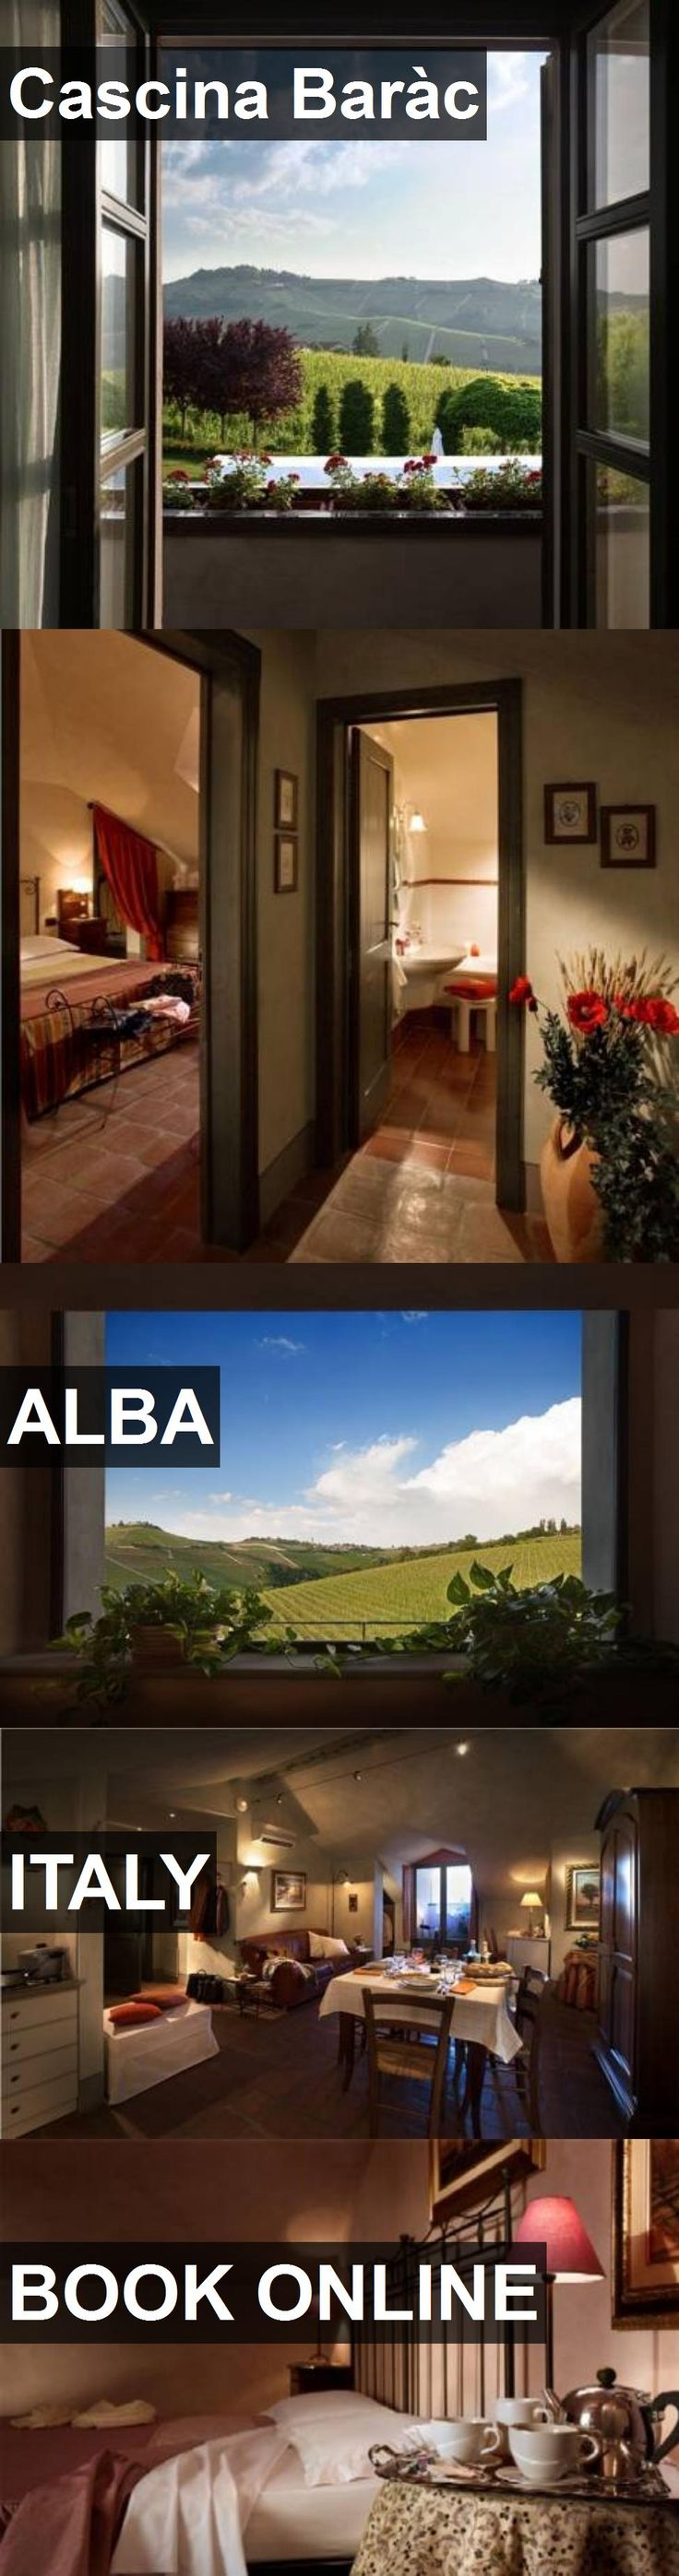 Hotel Cascina Baràc in Alba, Italy. For more information, photos, reviews and best prices please follow the link. #Italy #Alba #CascinaBaràc #hotel #travel #vacation